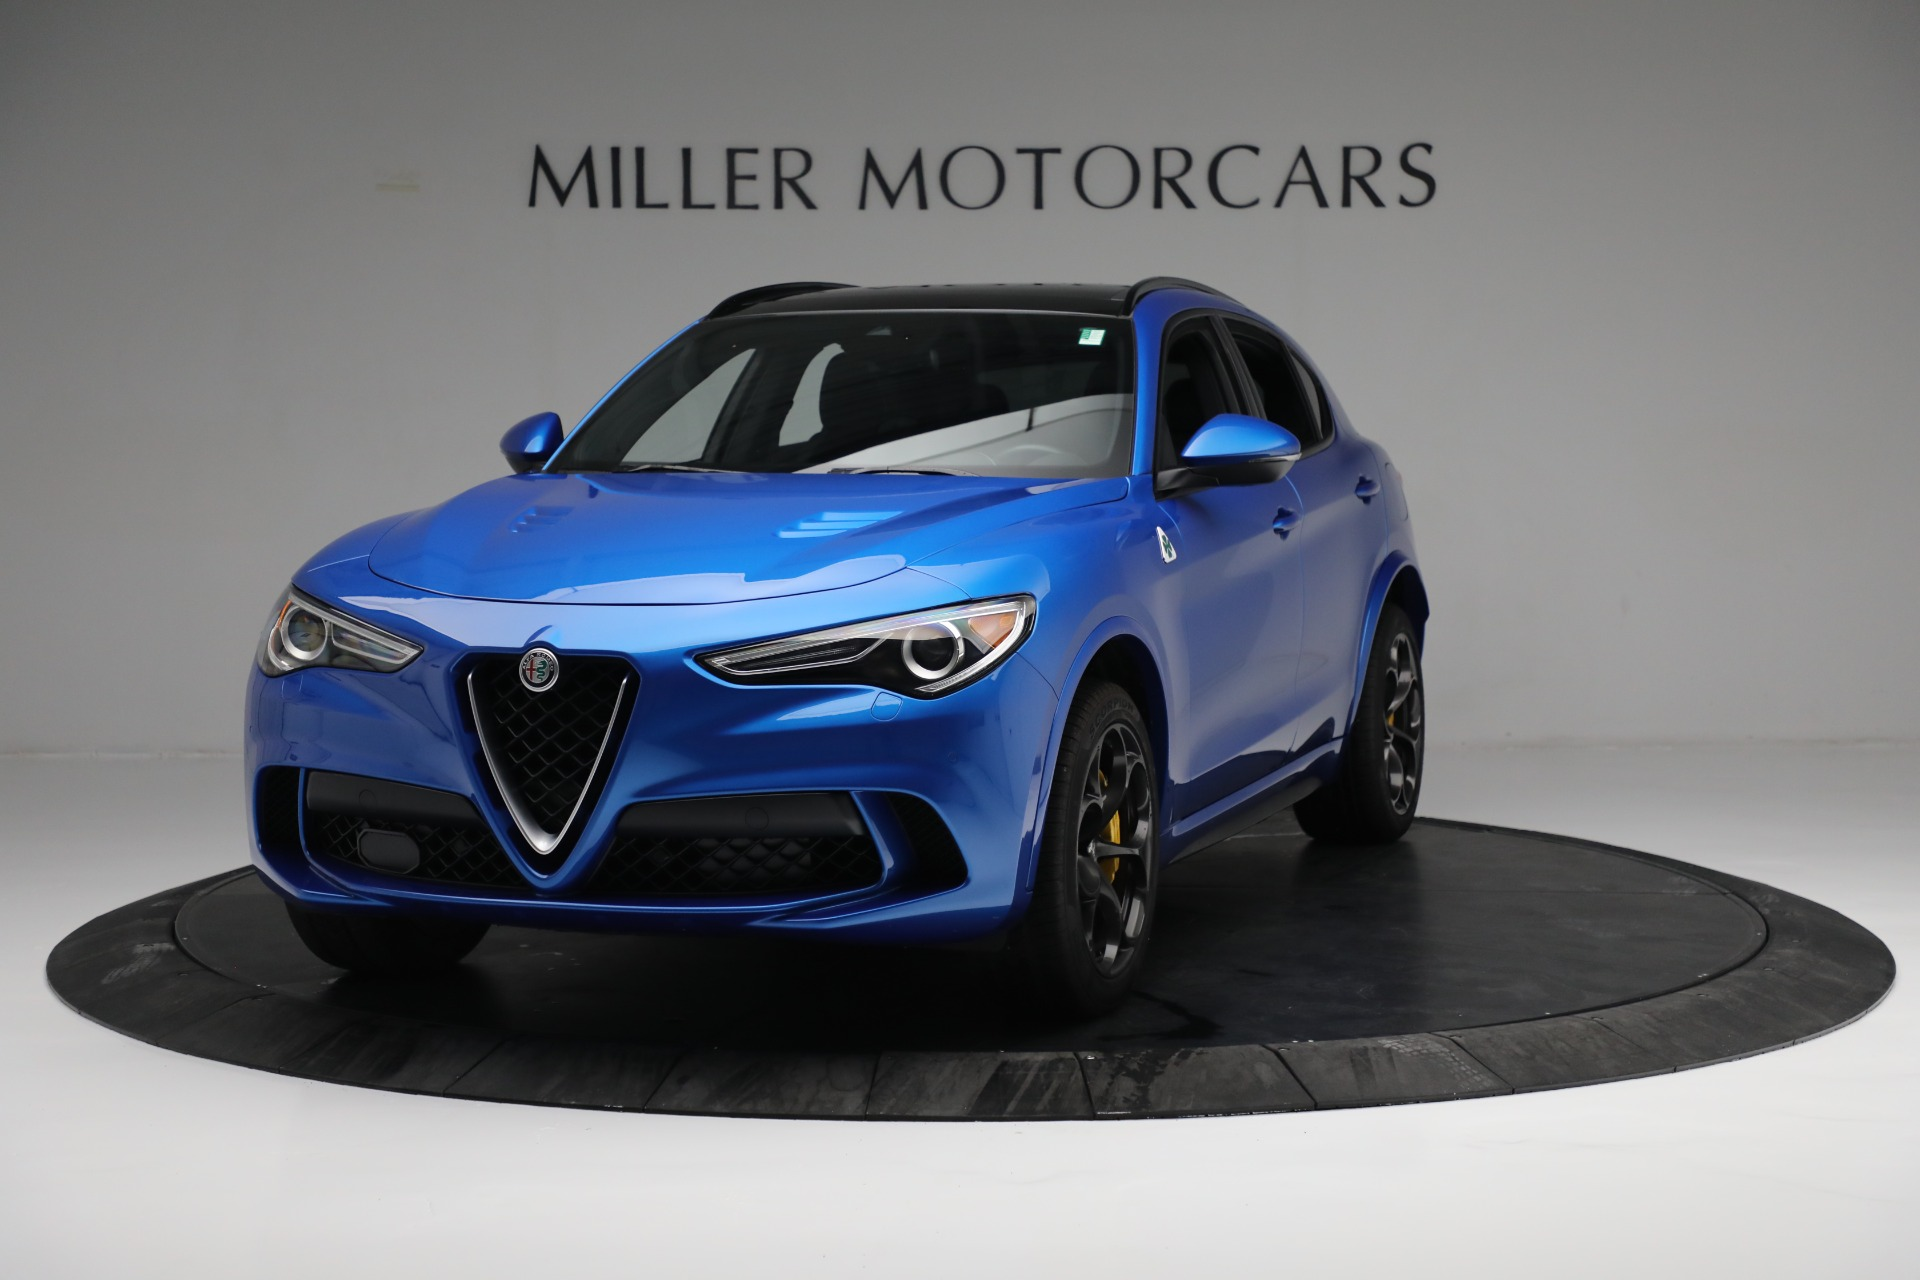 2019 alfa romeo stelvio quadrifoglio stock # l557 for sale near